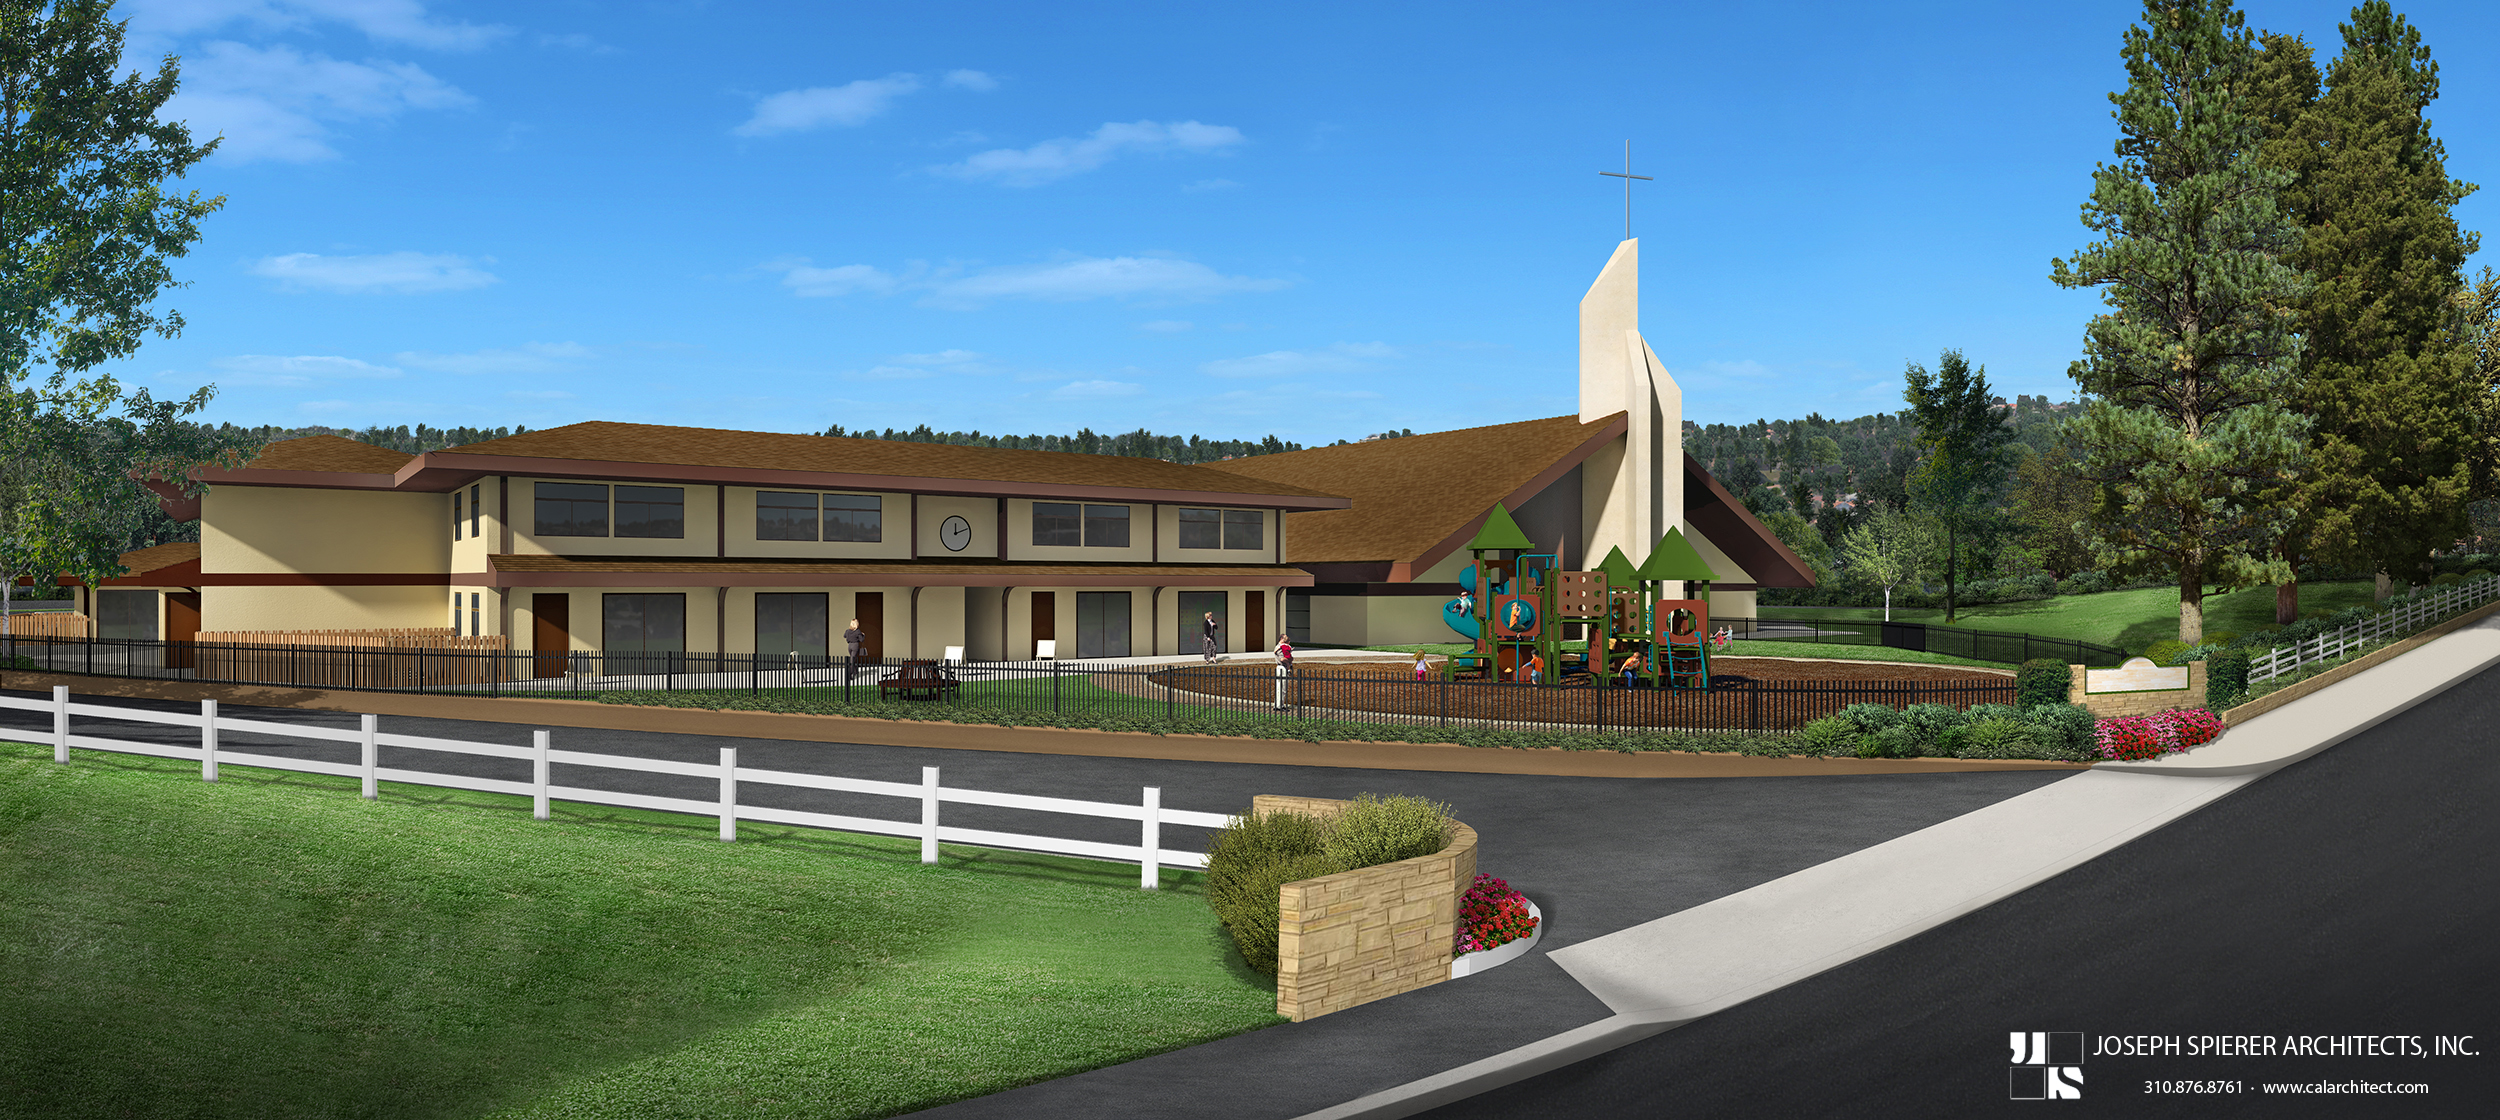 RHUMC architect's rendering